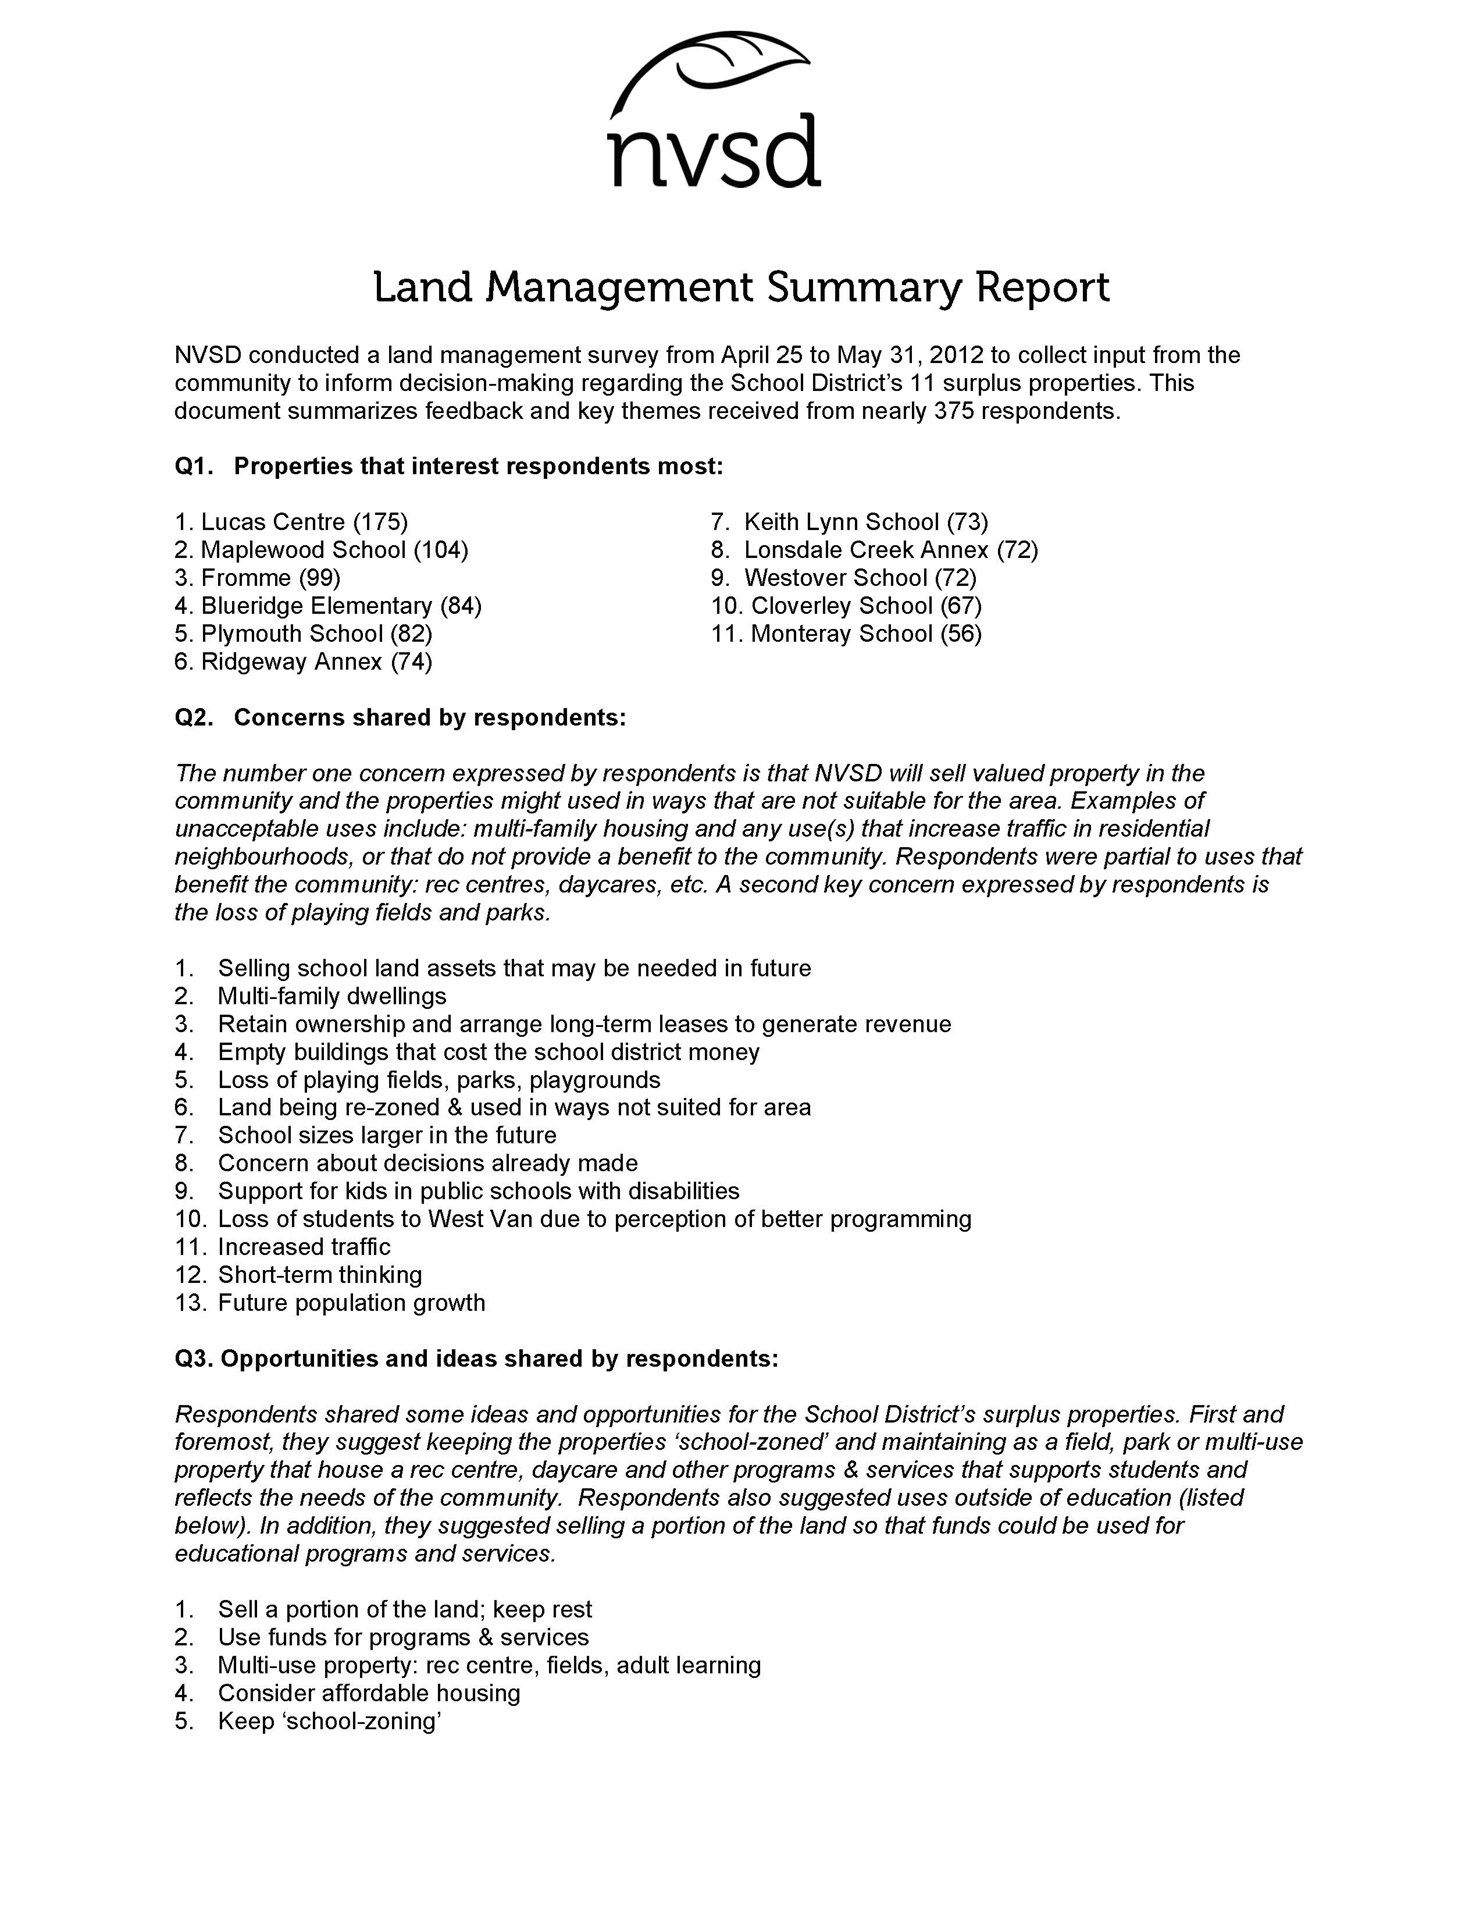 NVSD-Land-Management-Summary-Report-June-12-2012-1lpe9in_Page_1.jpg